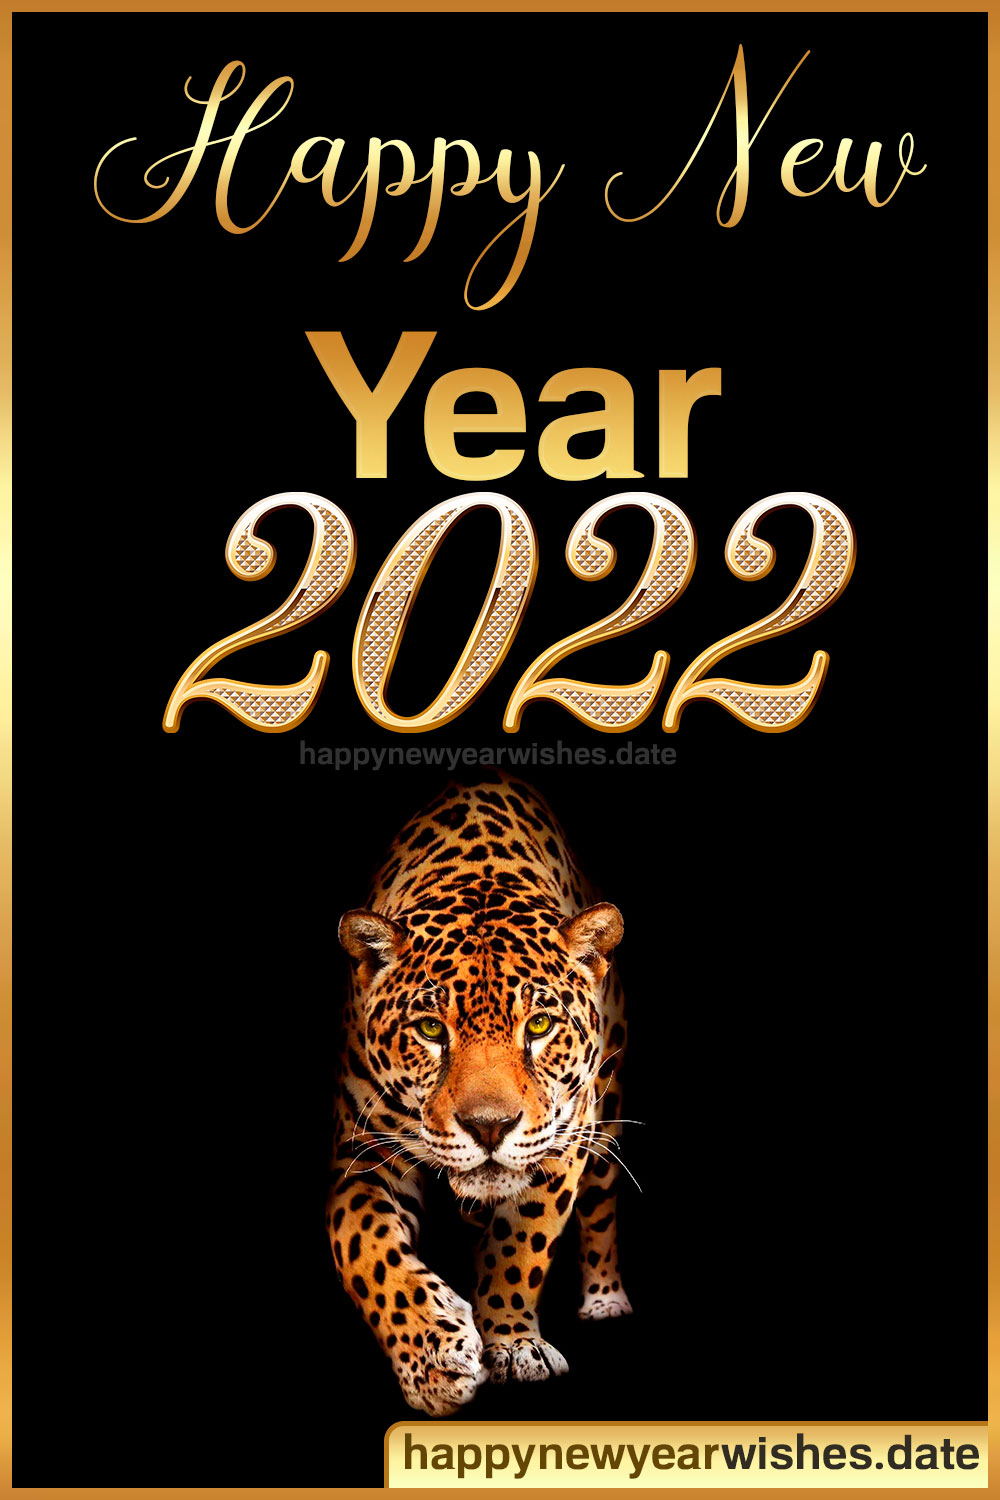 Chase Calendar 2022.Happy Chinese New Year 2022 Wishes